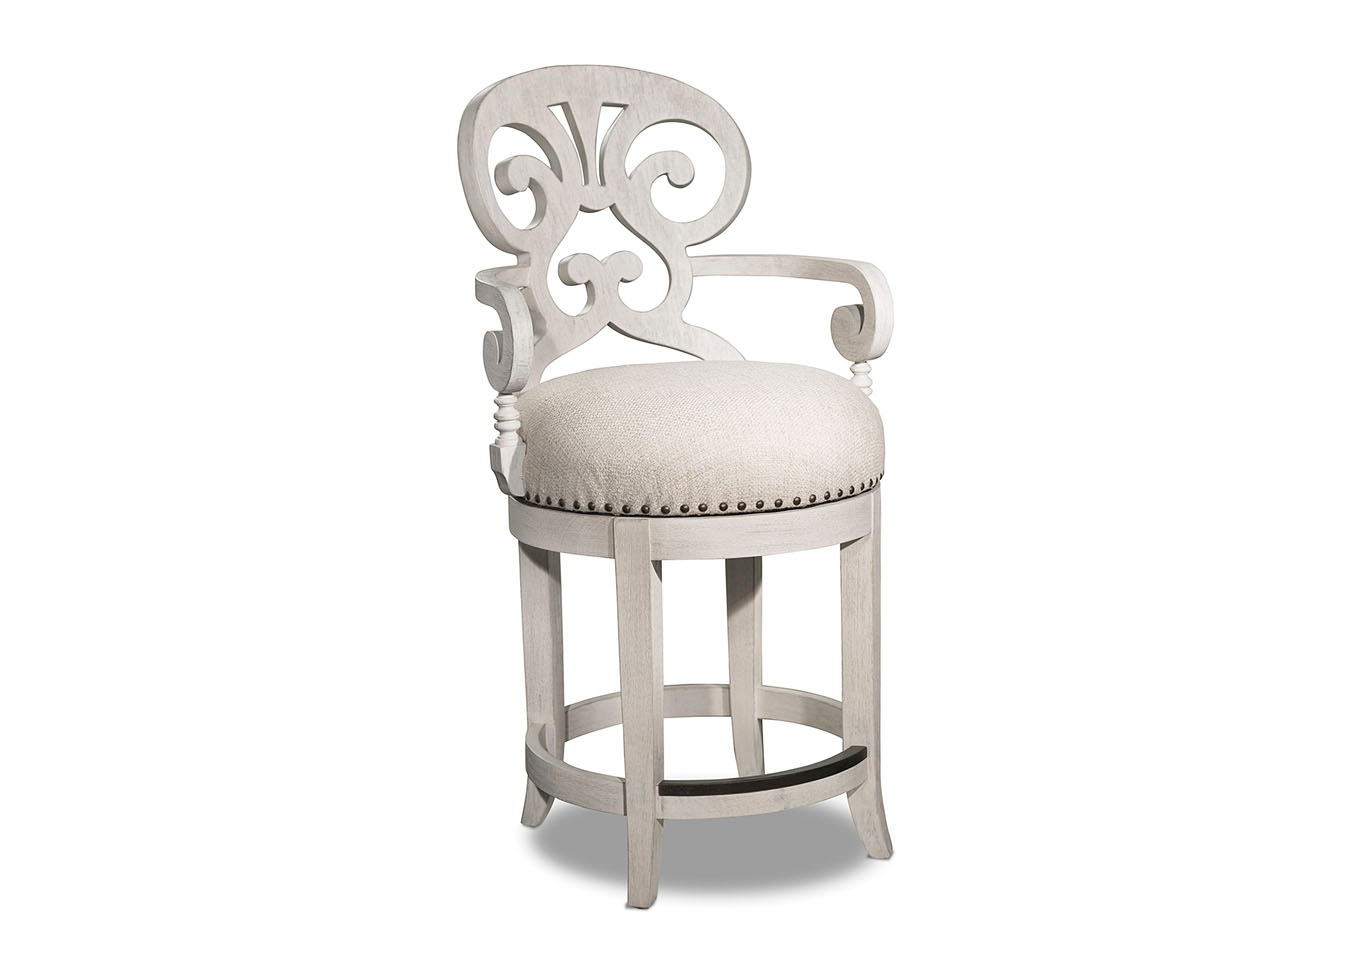 Mimosa Cottage Fabric Counter Stool,Hooker Furniture